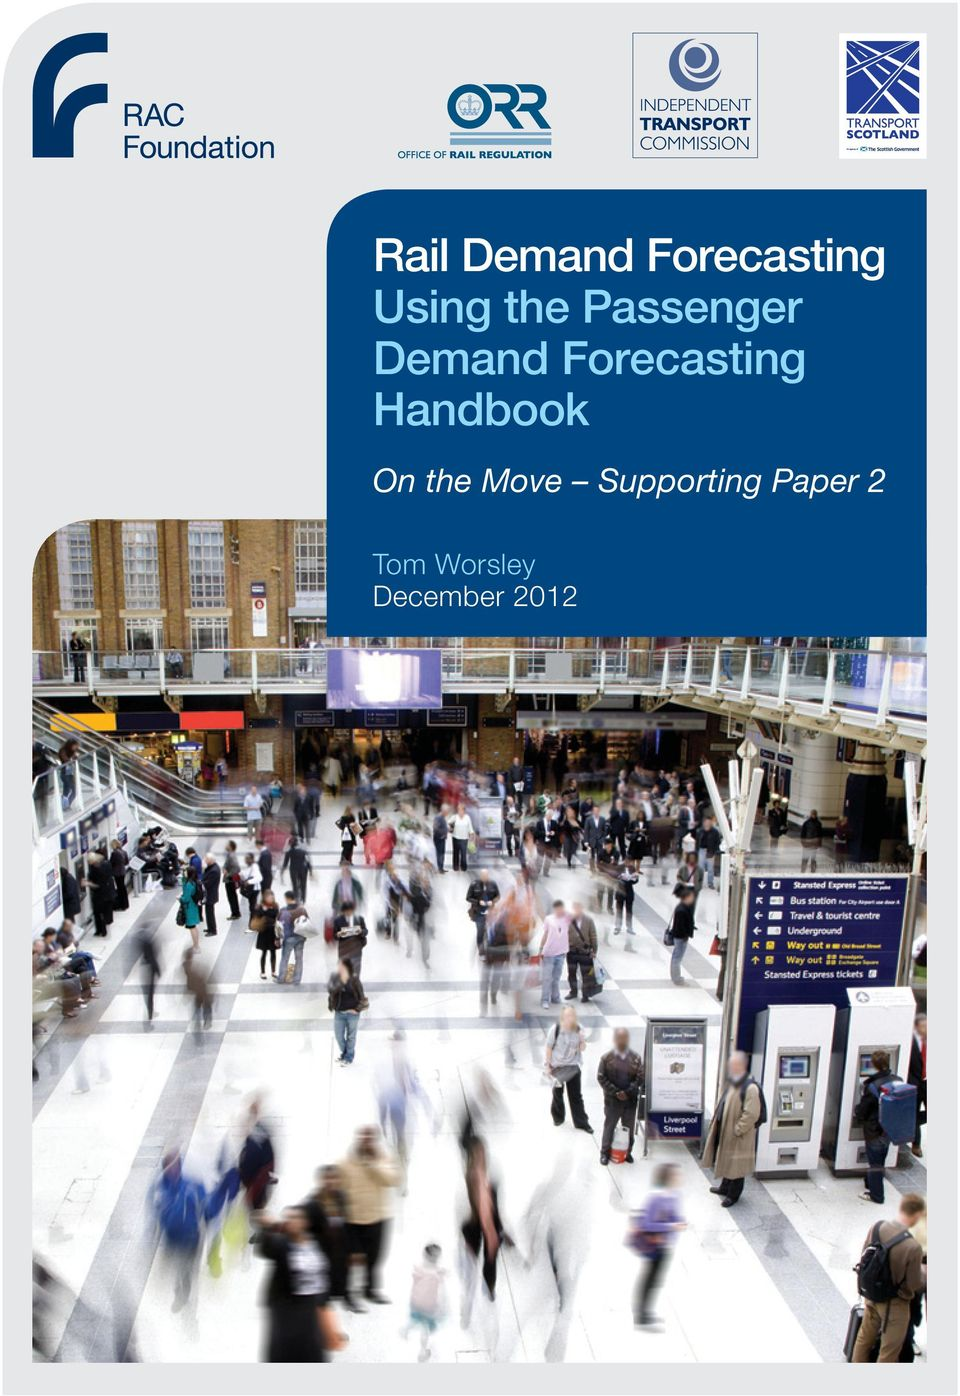 Forecasting Handbook On the